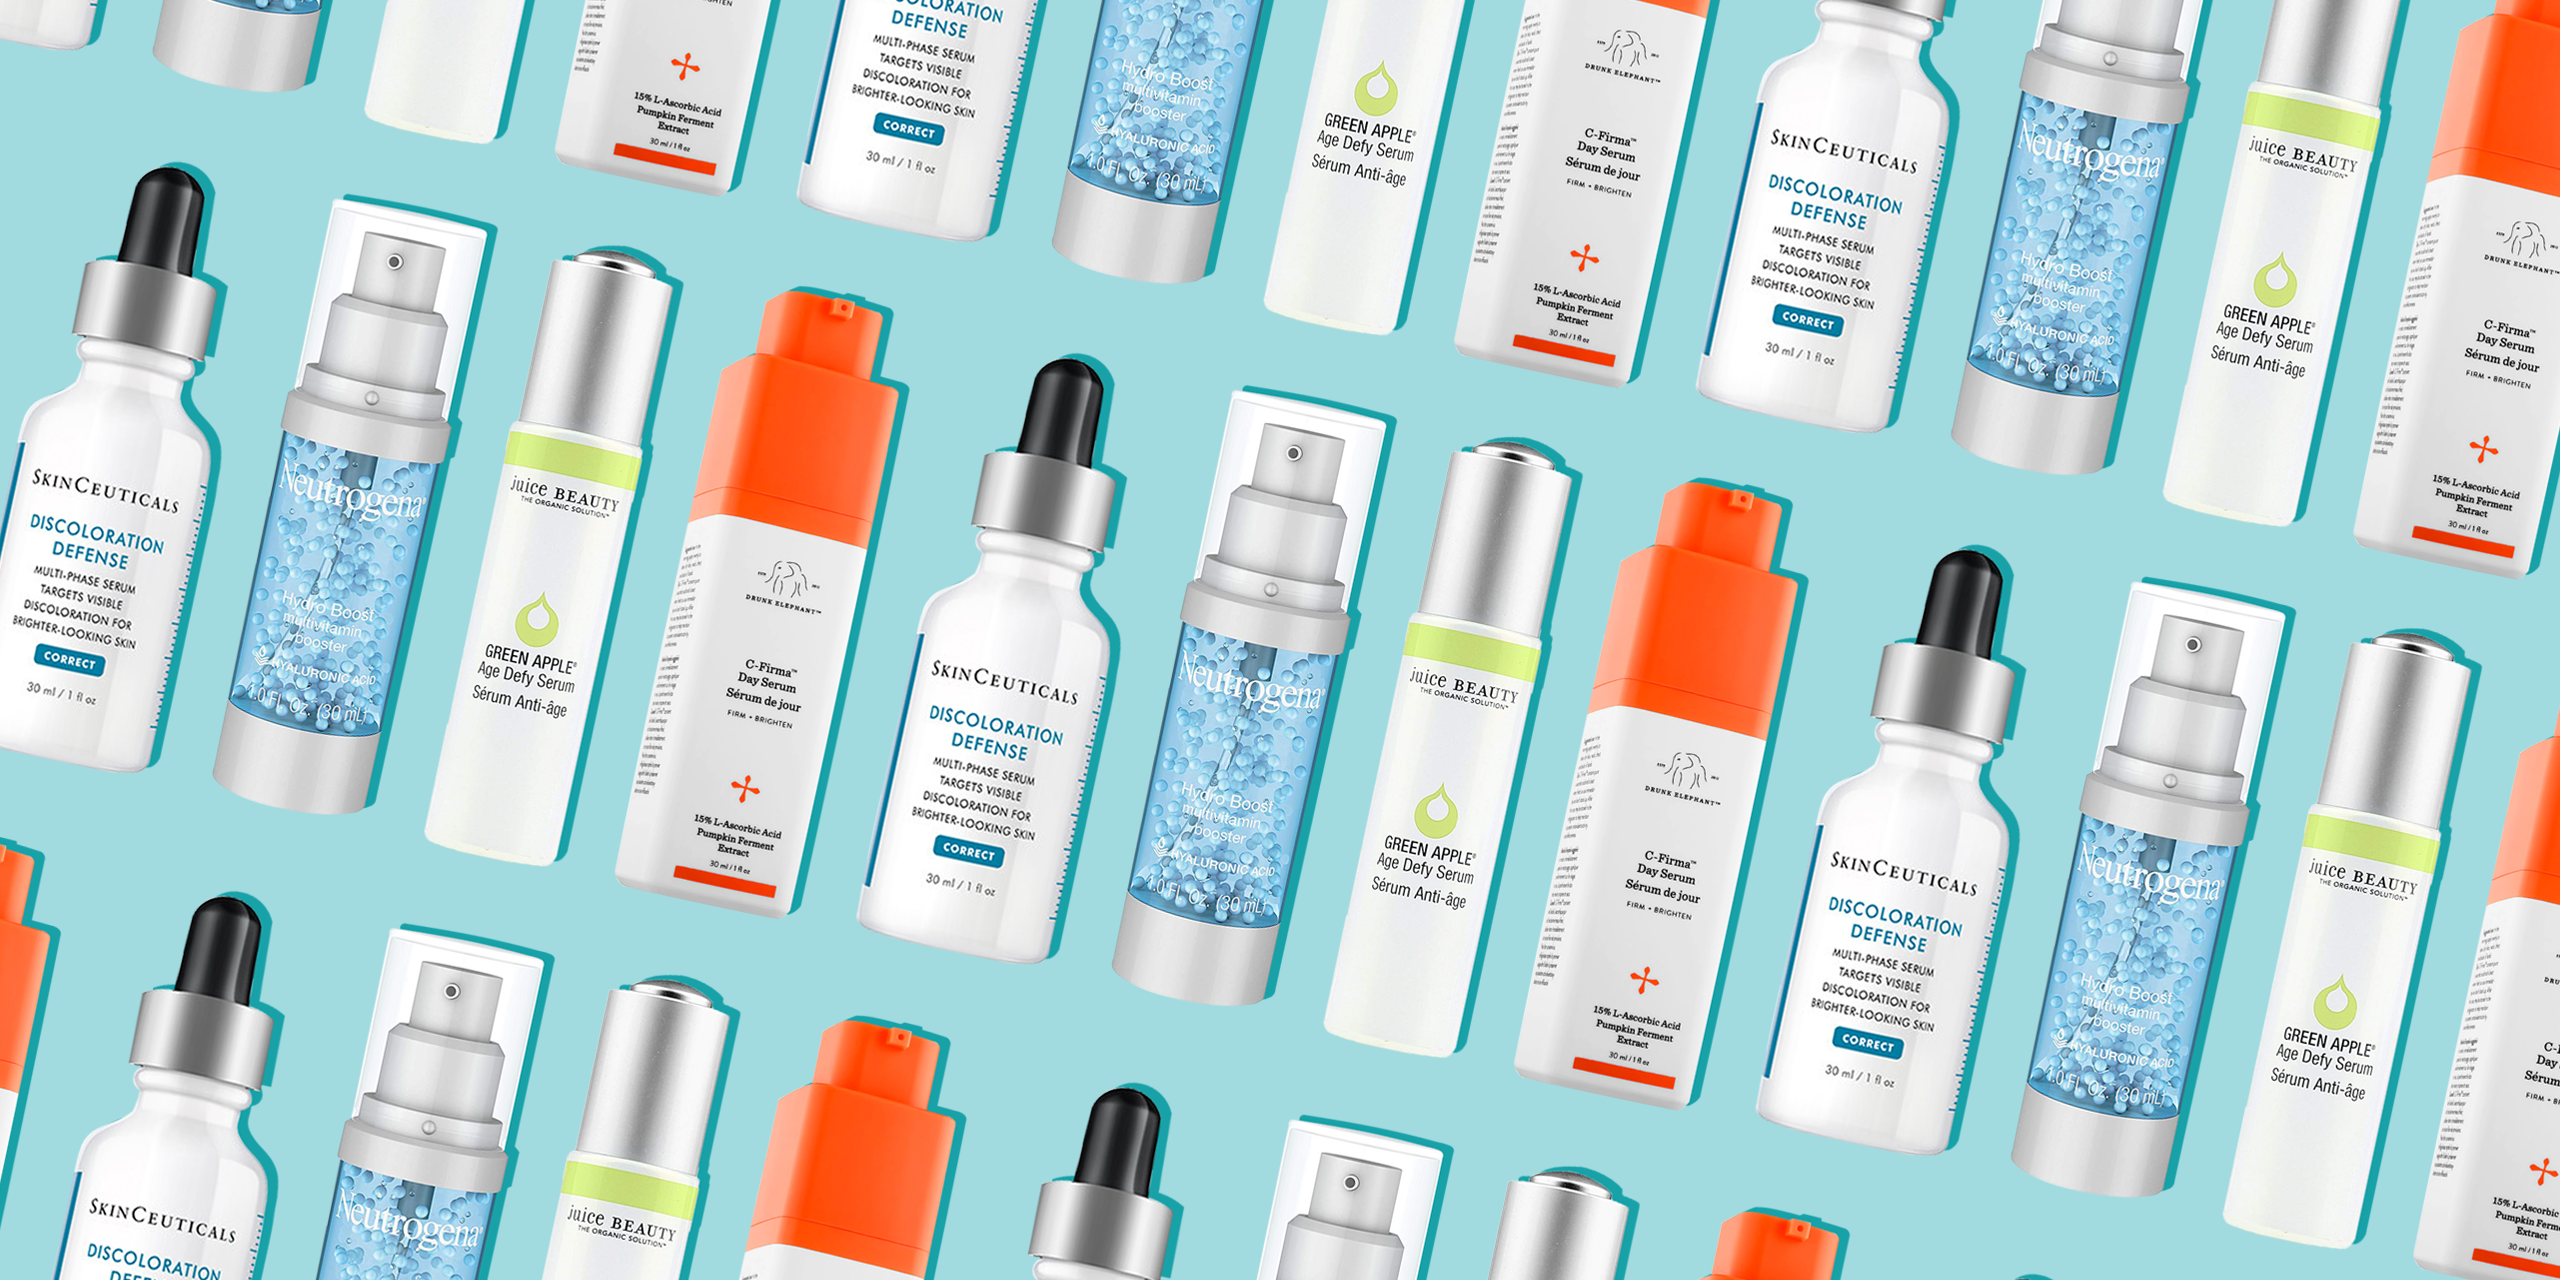 11 Best Antioxidant Serums In 2020 According To Dermatologists